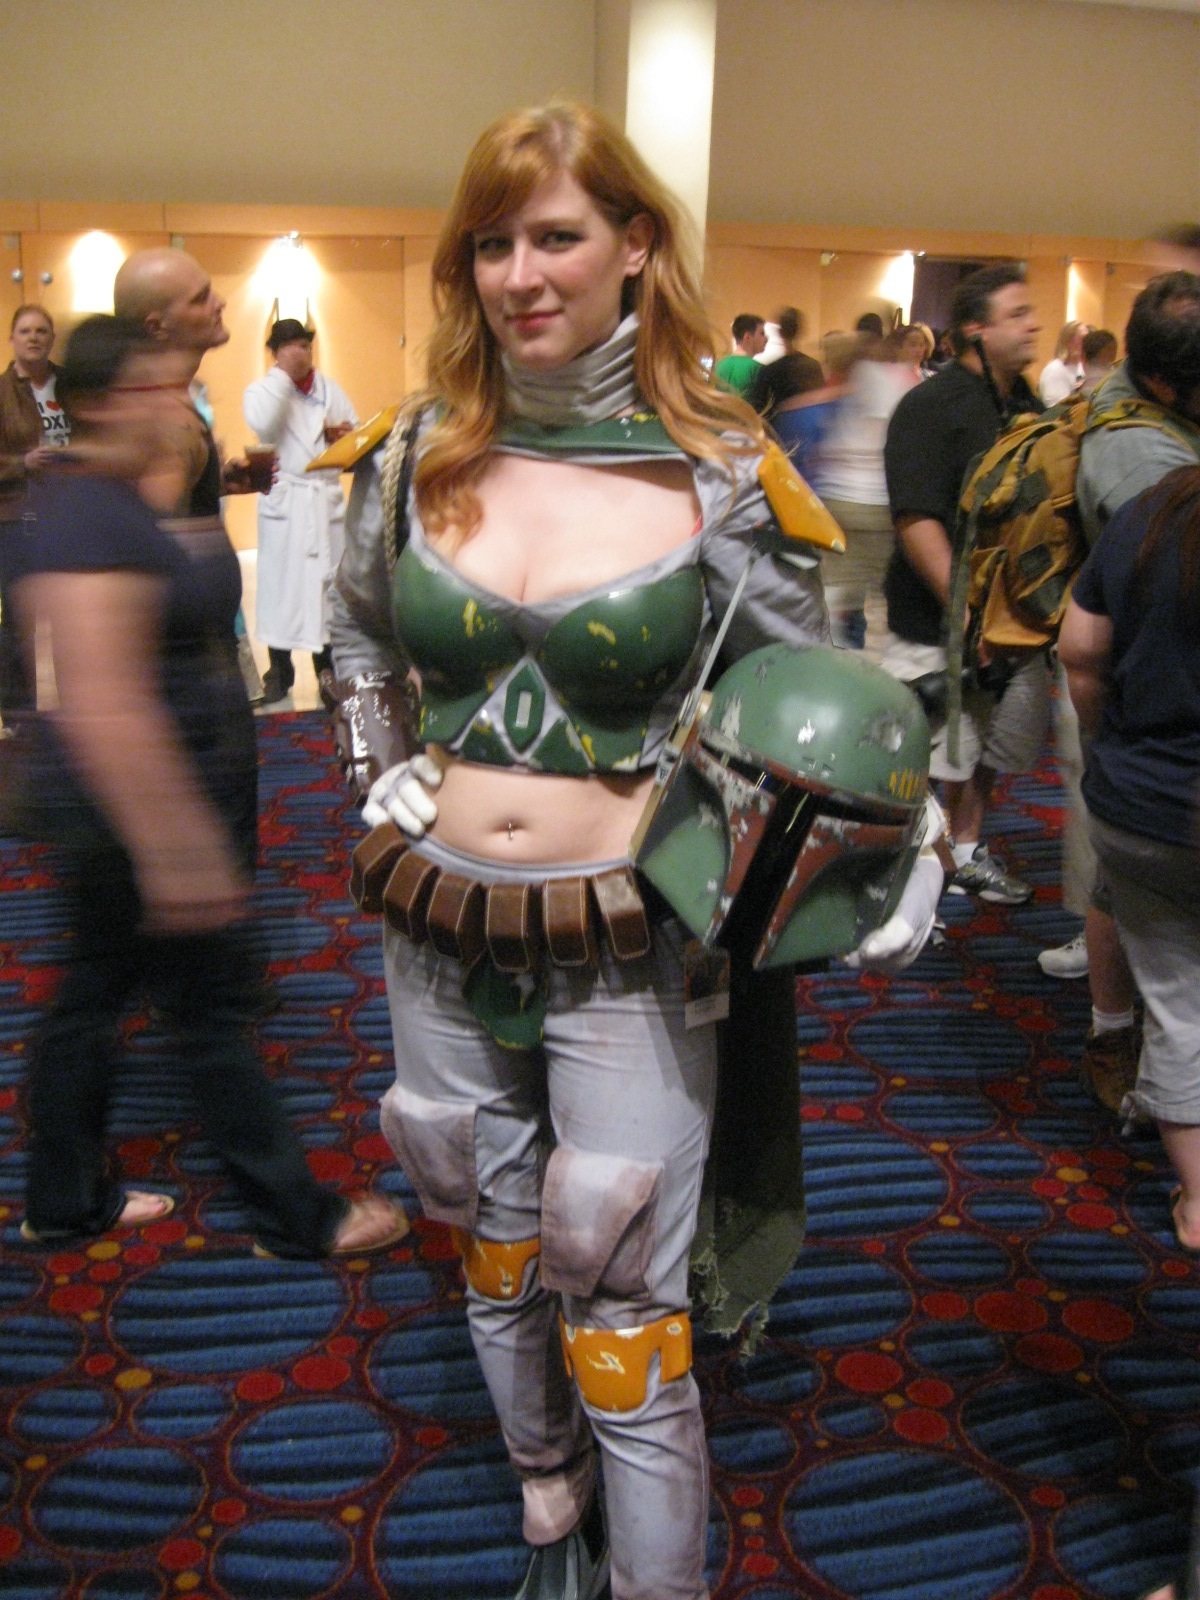 ESTO es ser un fan de Star Wars... Cosplay-DragonCon-image-17